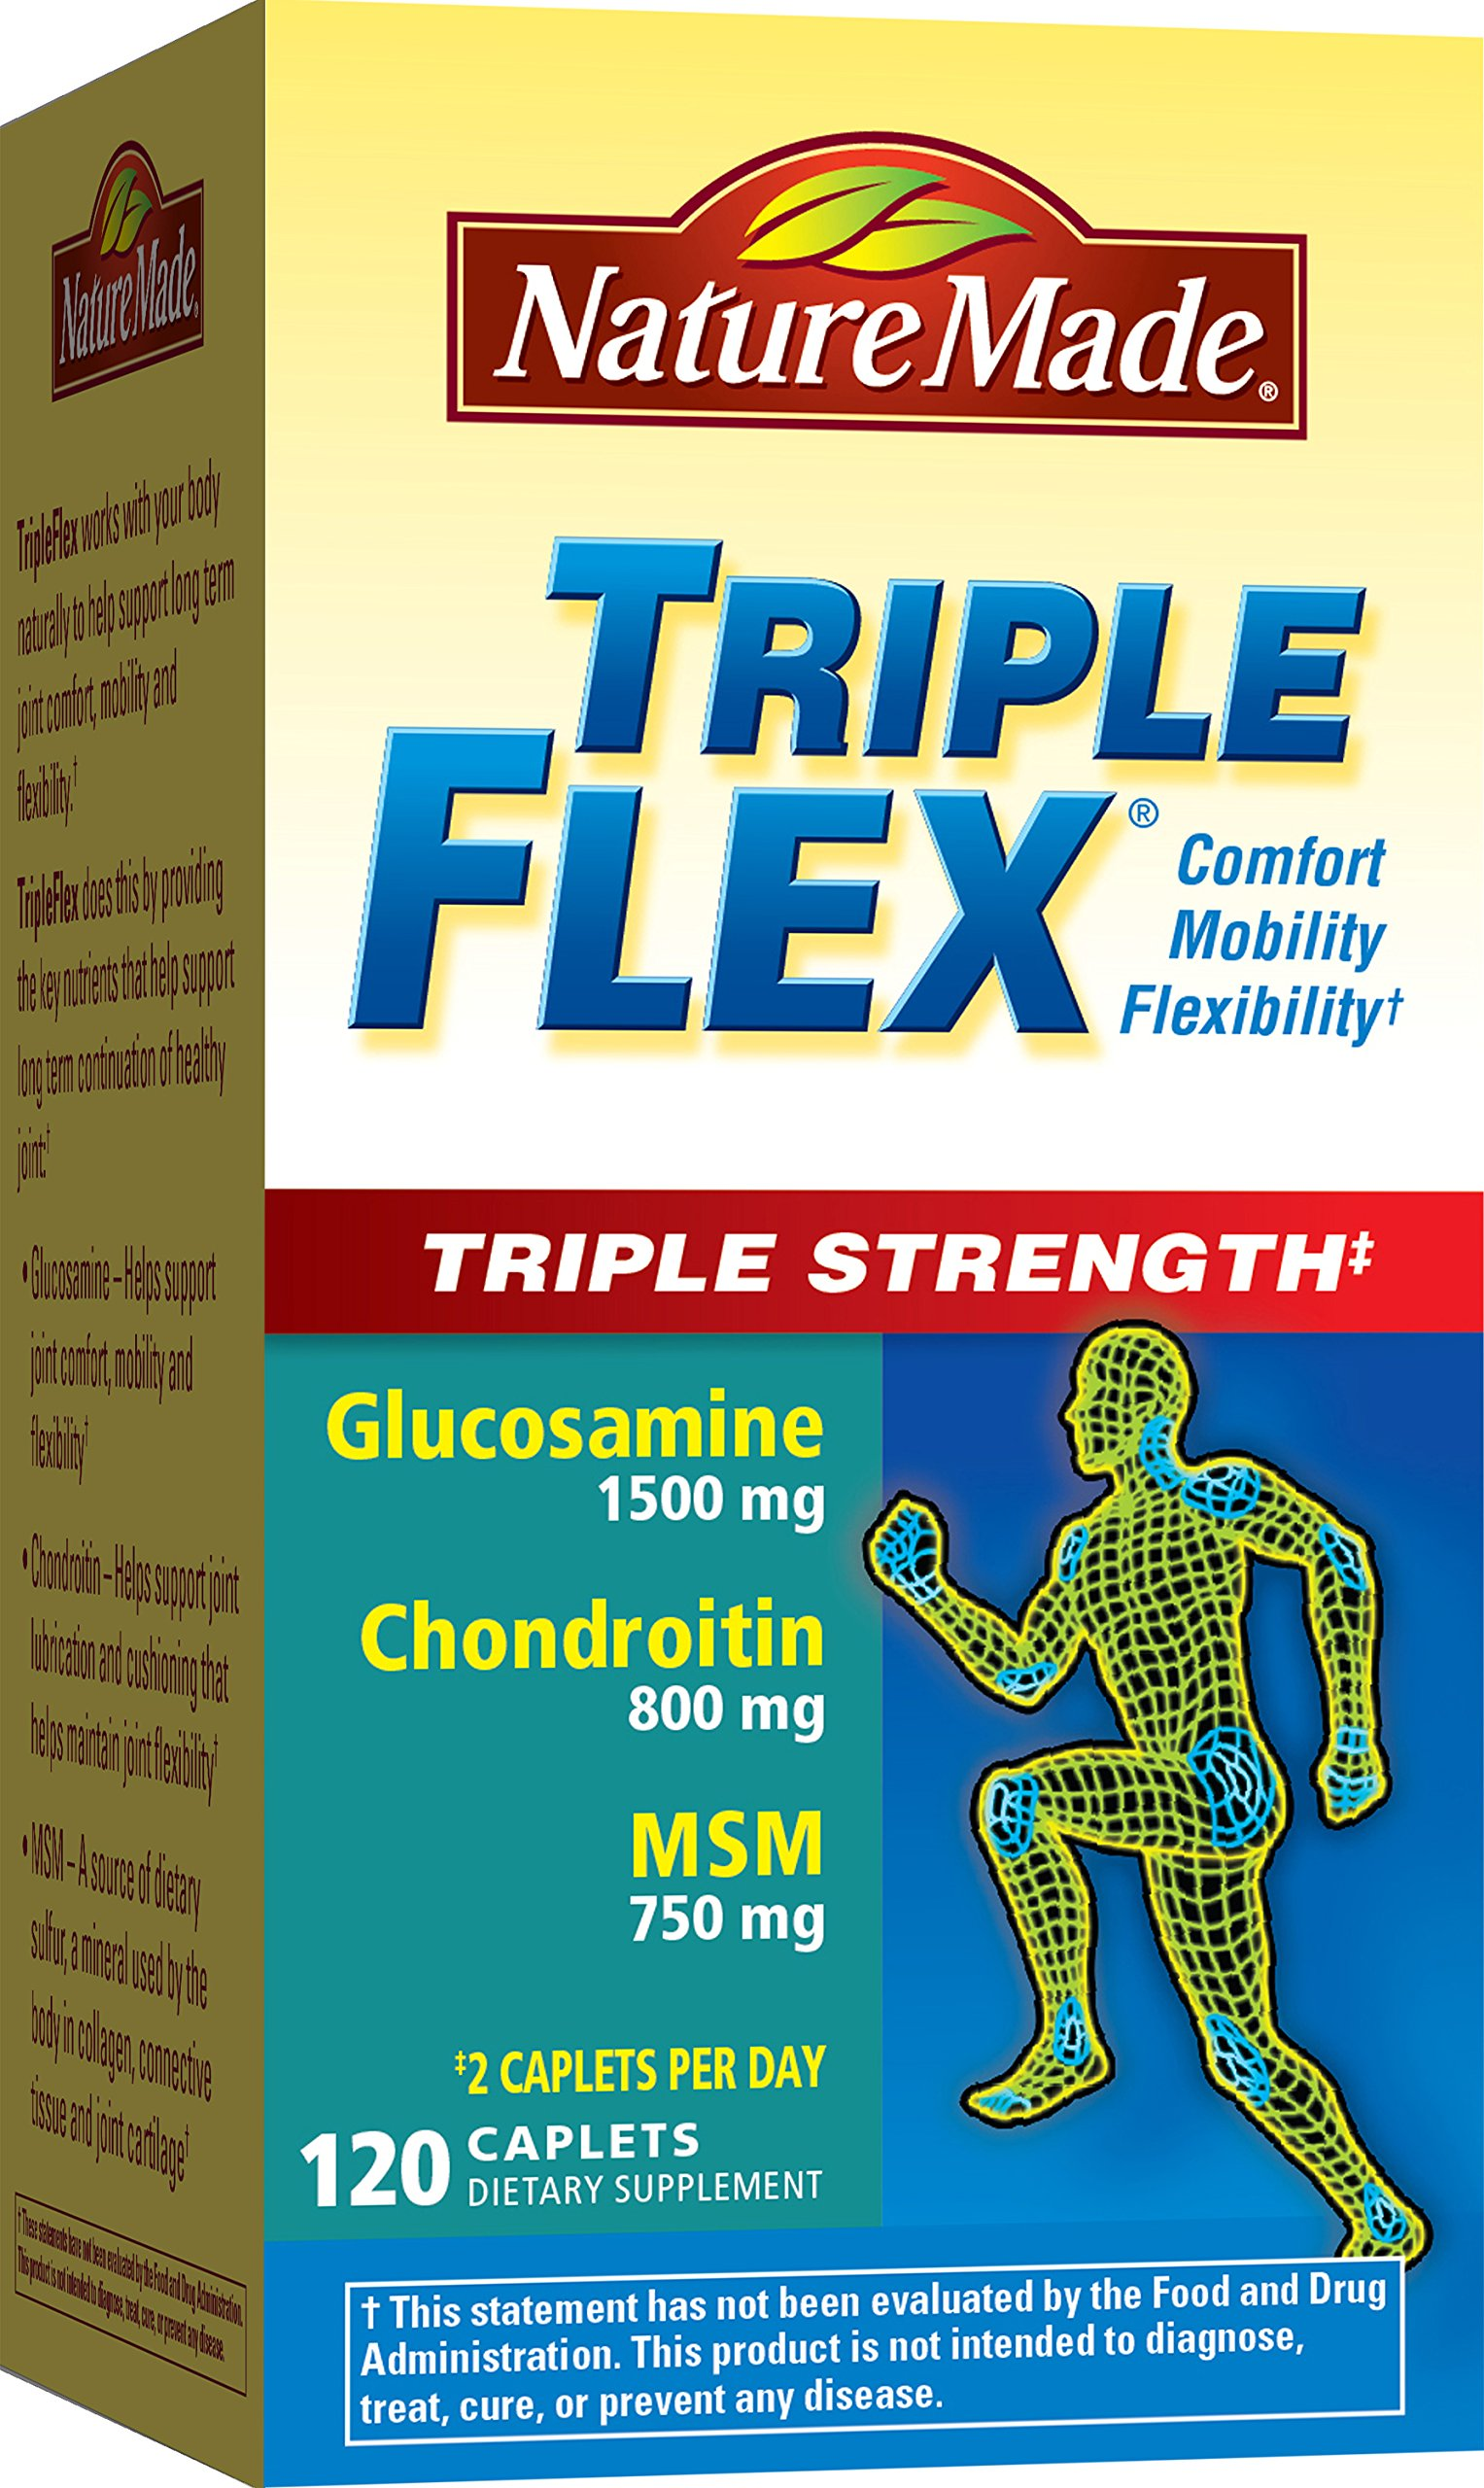 Cheap Glucosamine Chondroitin Triple Strength Find Puritan Pride Joint Soother Msm 90 Caplets Get Quotations Nature Made Tripleflex Caplet Value Size 120 Ct